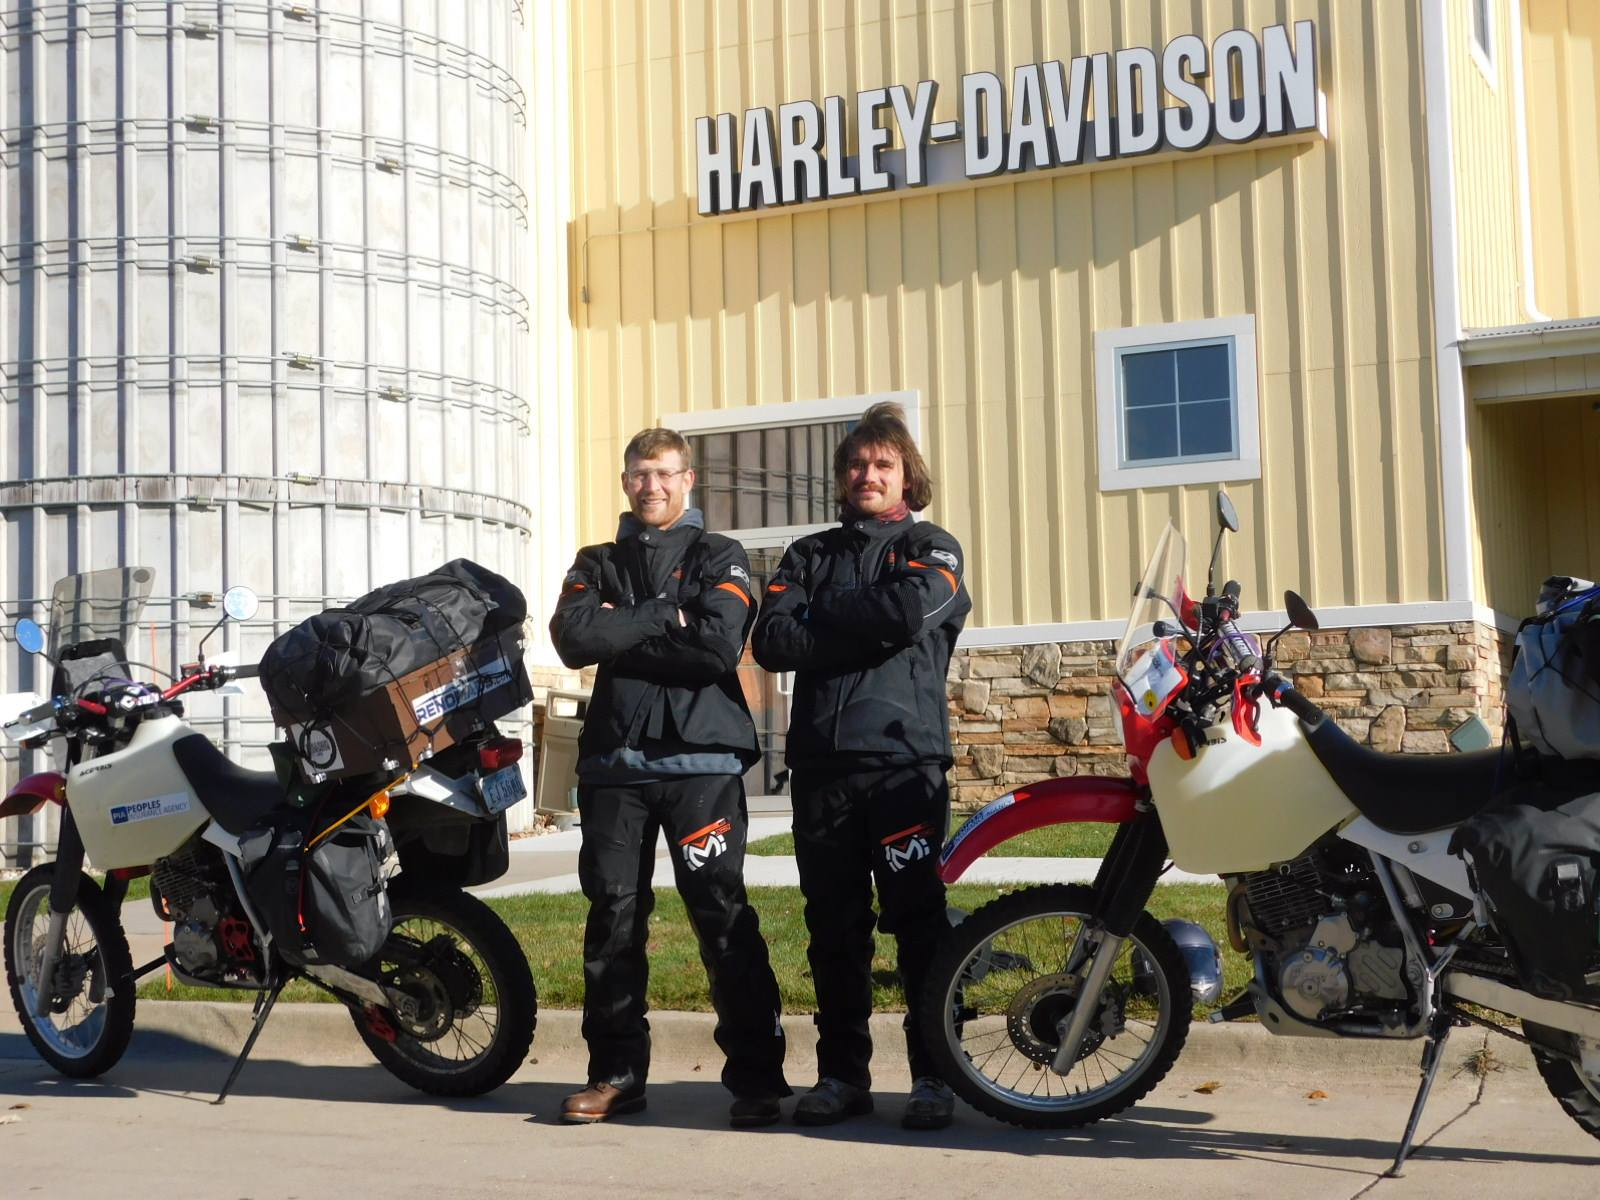 Official takeoff @ Harley Big Barn In Des Moines, Iowa